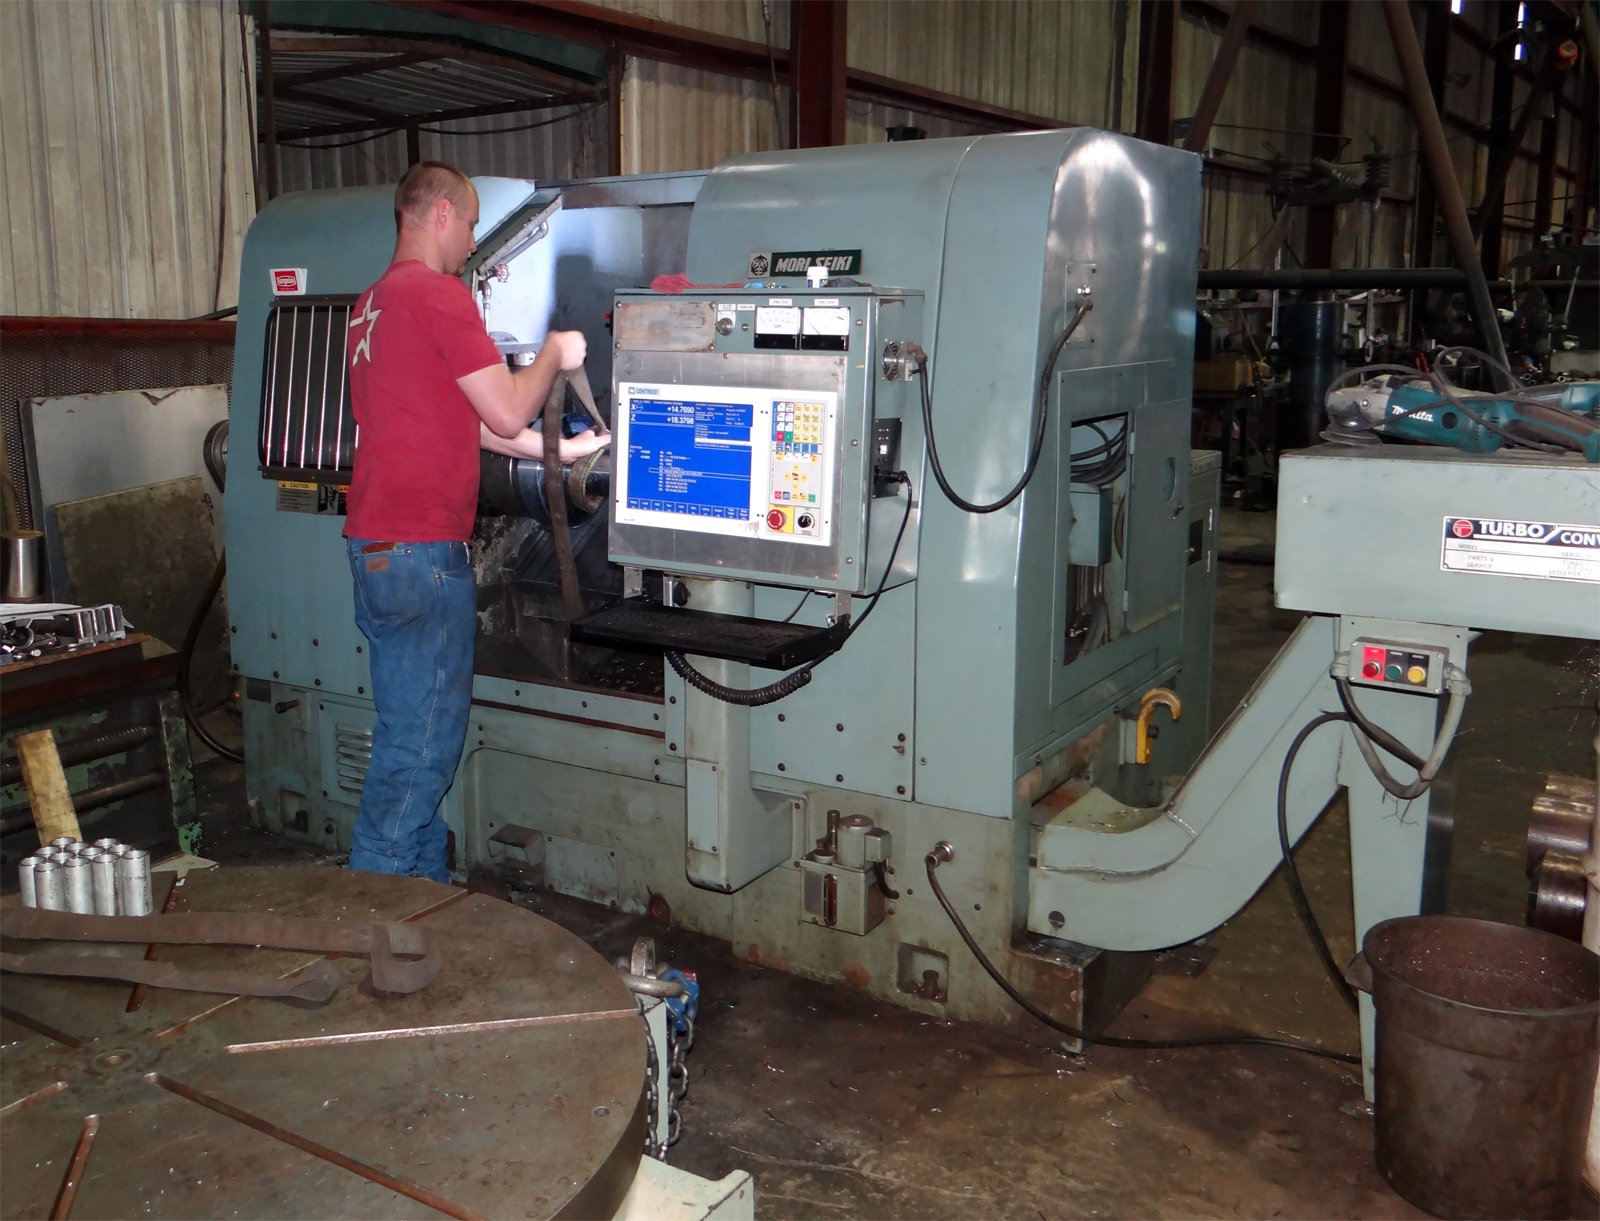 cnc machine work needed